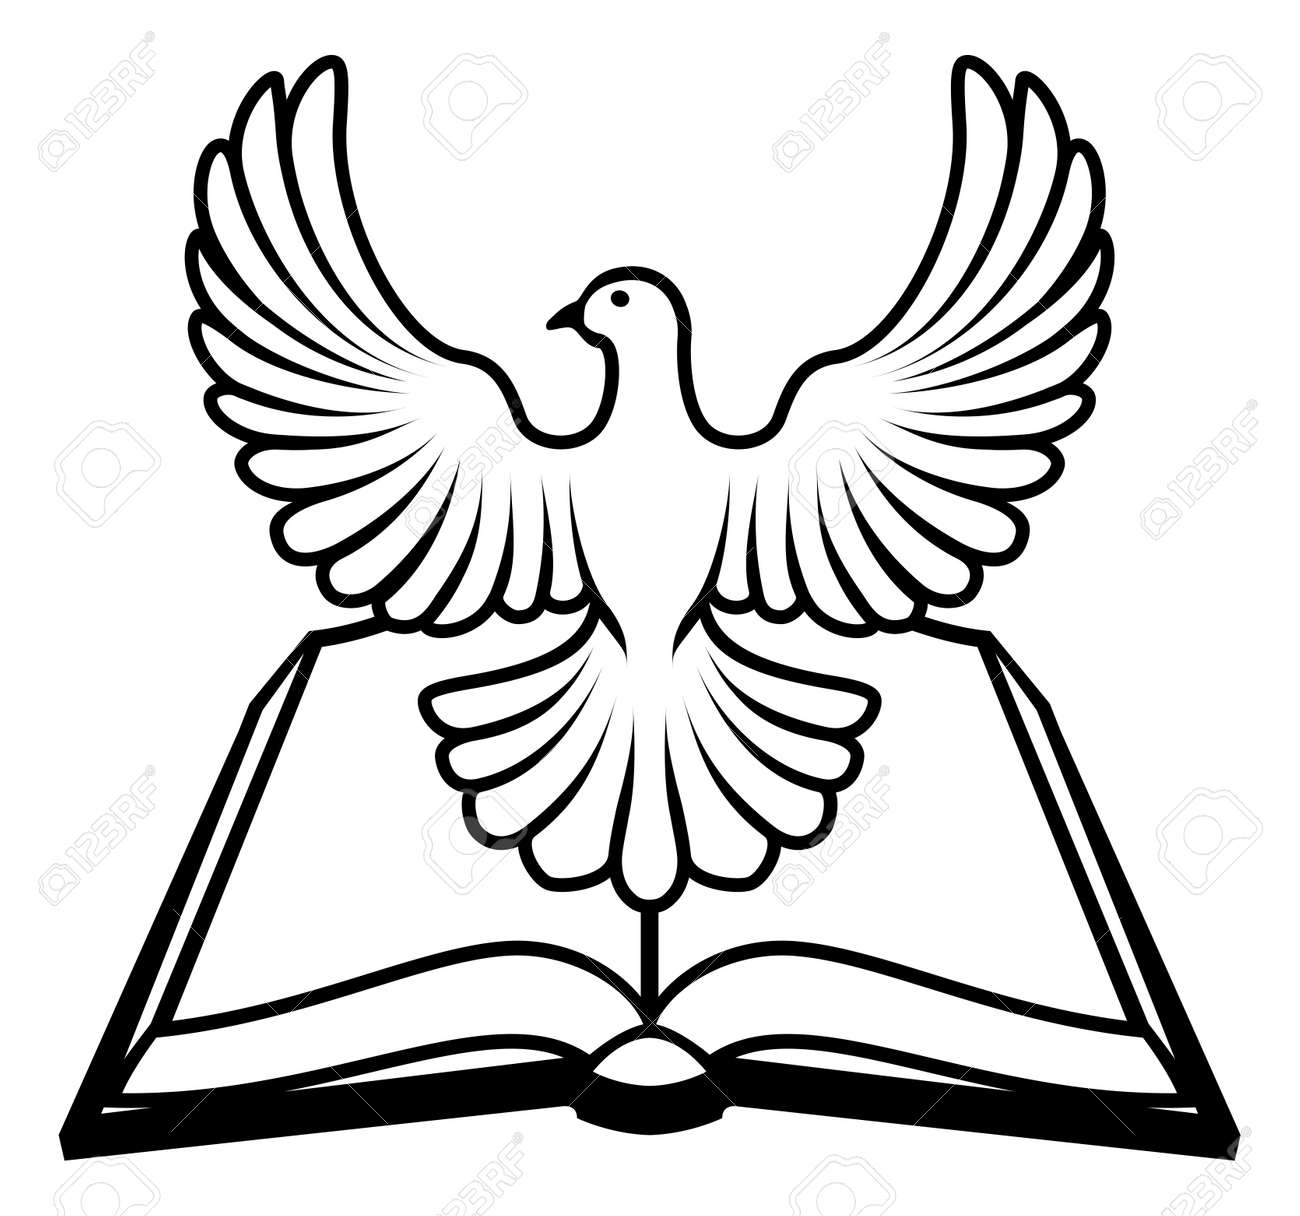 Christian bible with the holy spirit in the form of a white dove christian bible with the holy spirit in the form of a white dove stock vector buycottarizona Choice Image